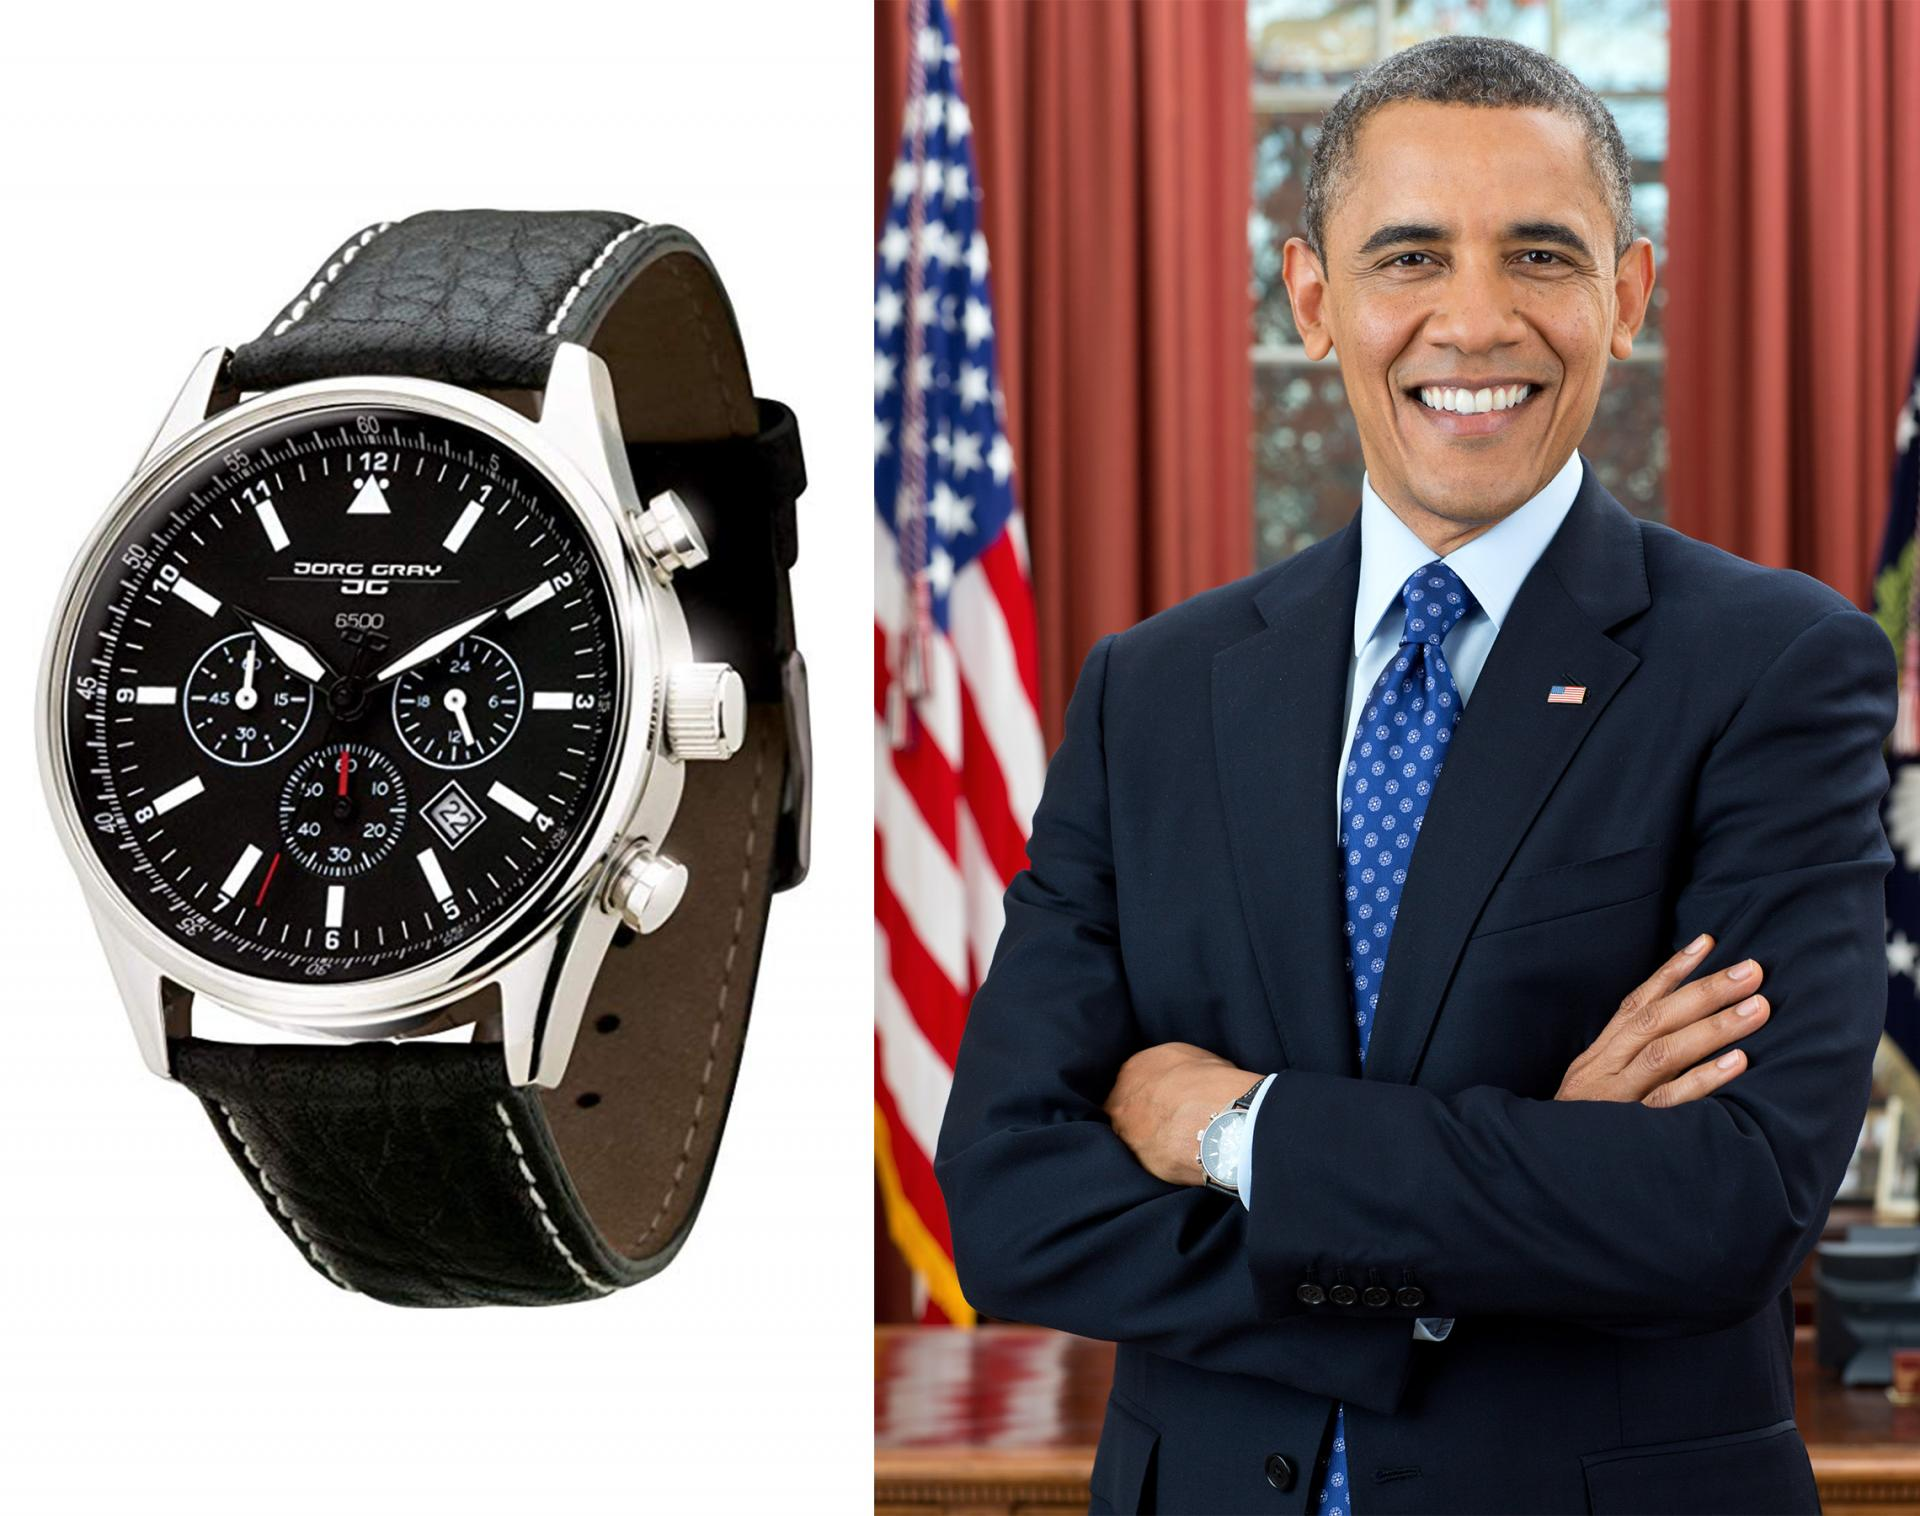 Presidents Dictators World Leaders And Their Watches Watches Watches Jewellery Luxury London